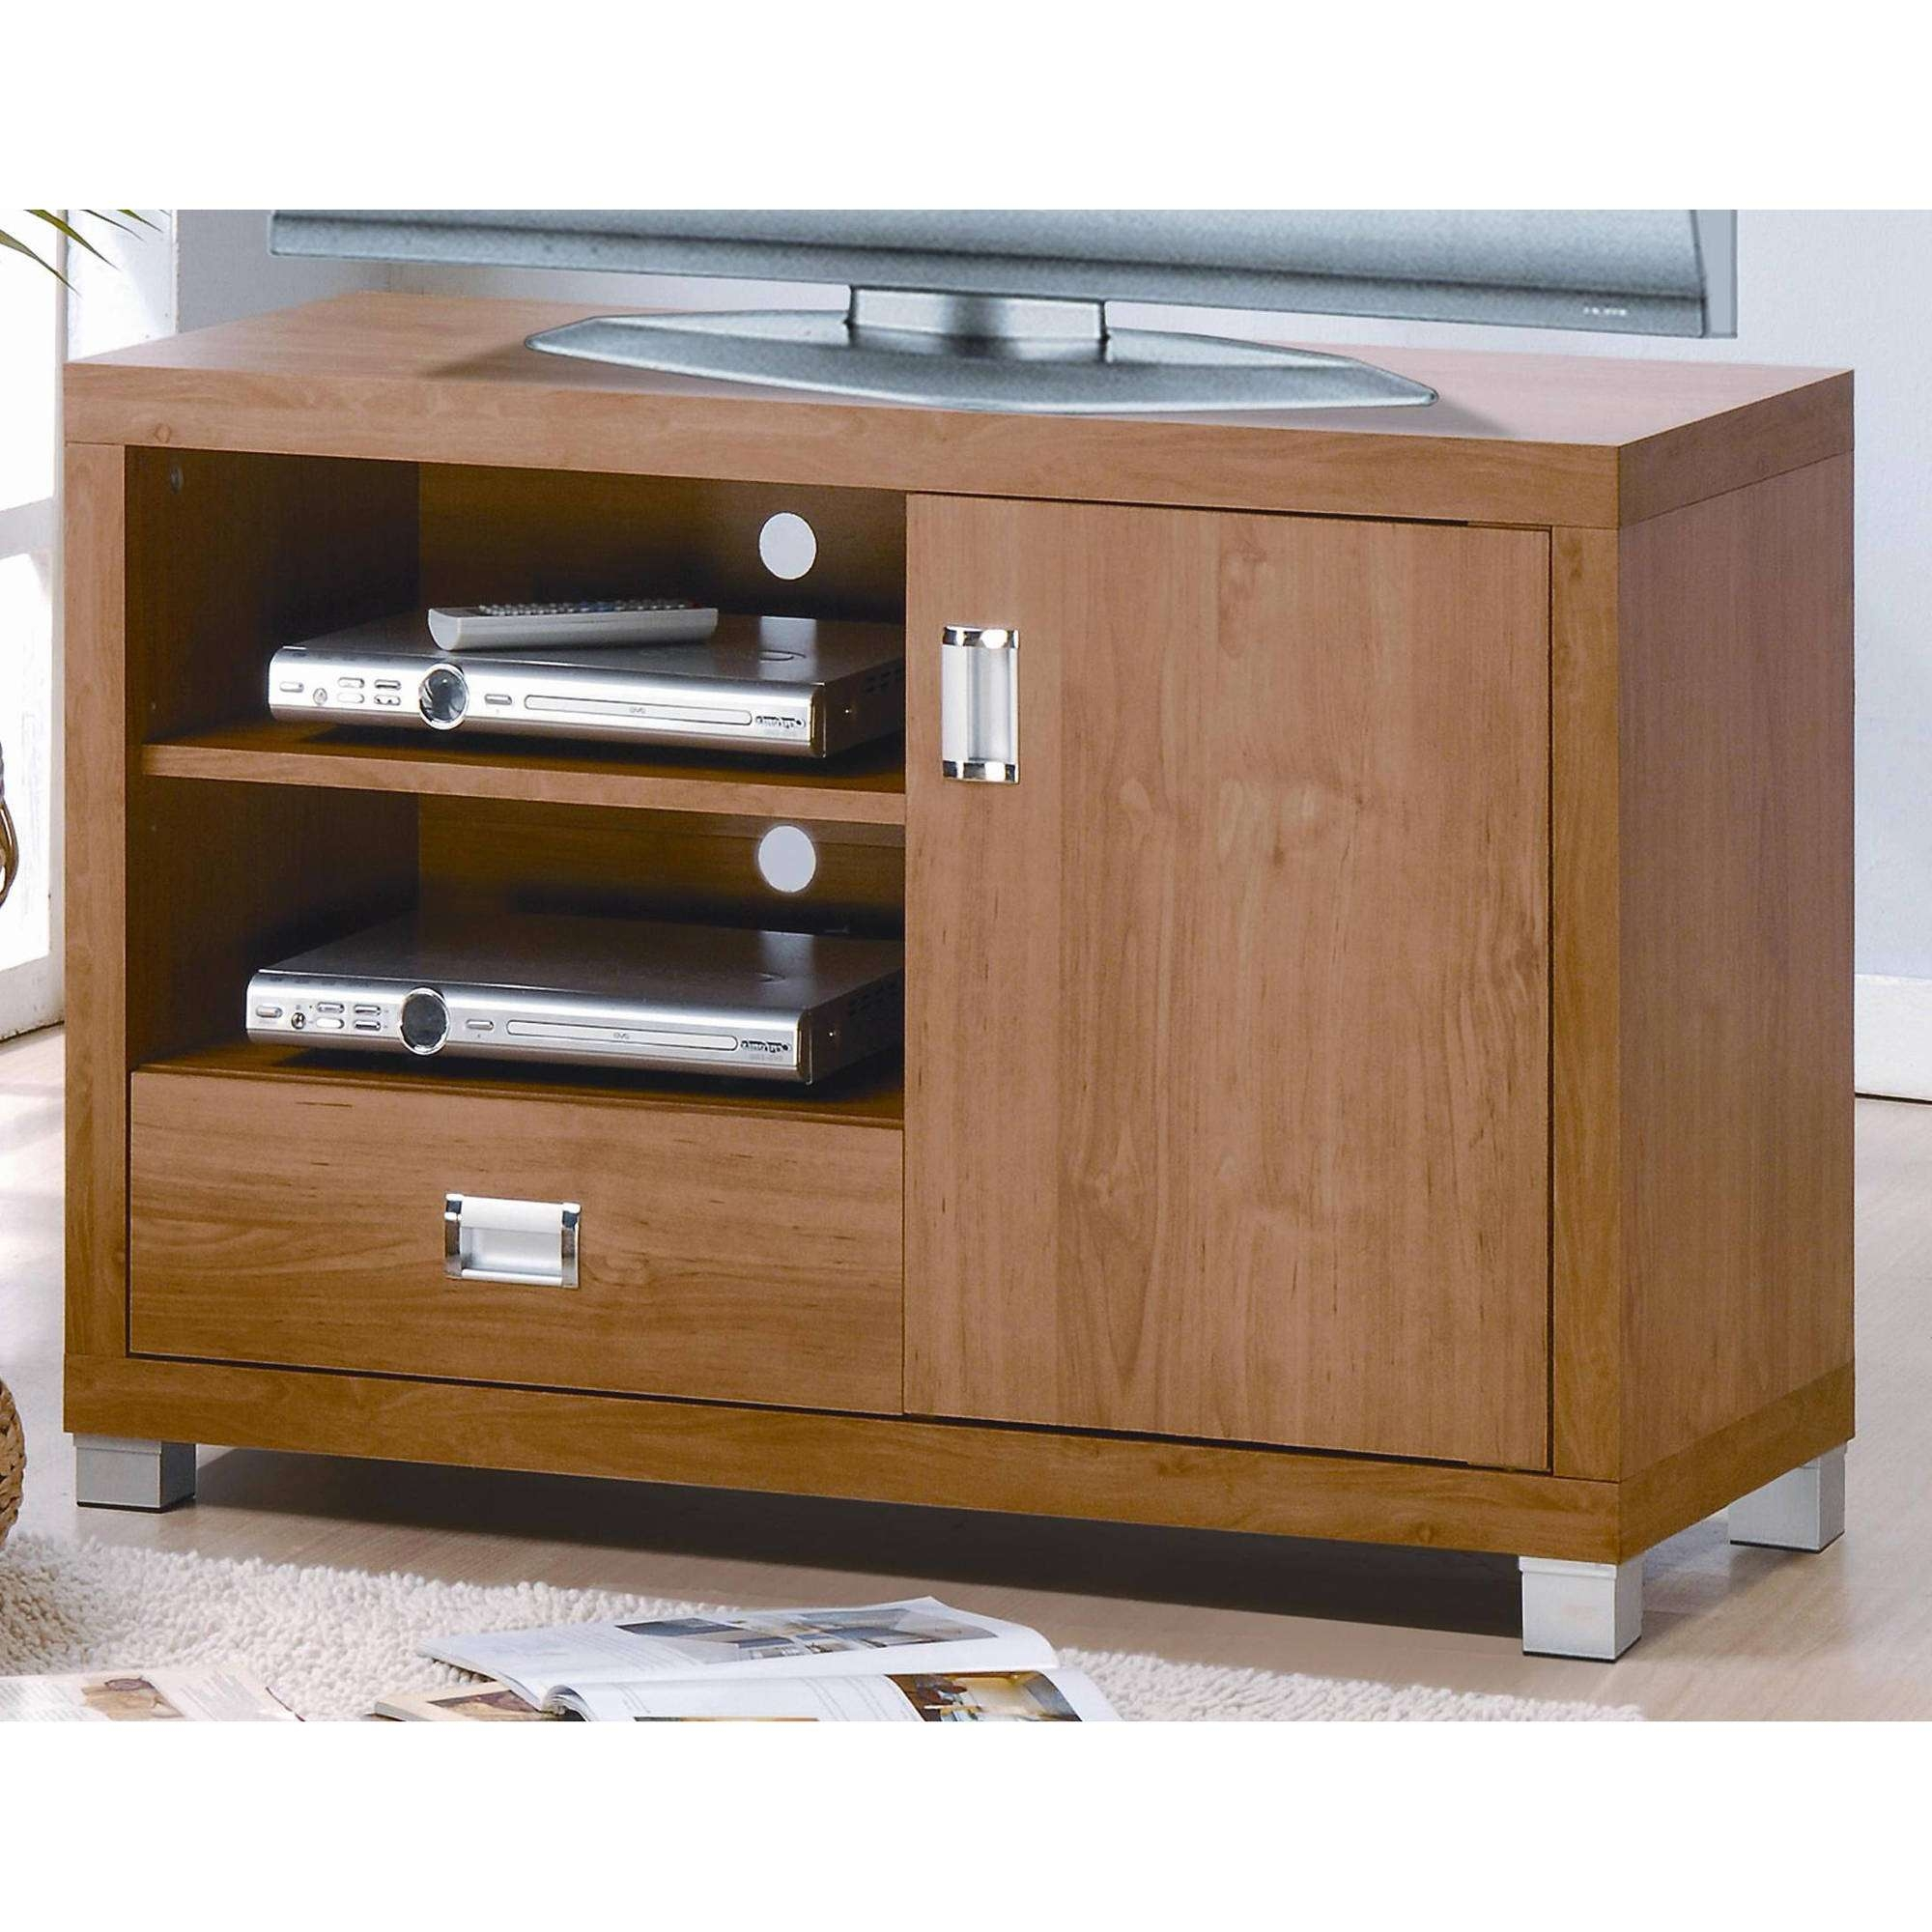 Techni Mobili Tv Cabinet, Maple – Walmart In Maple Tv Stands (View 13 of 20)